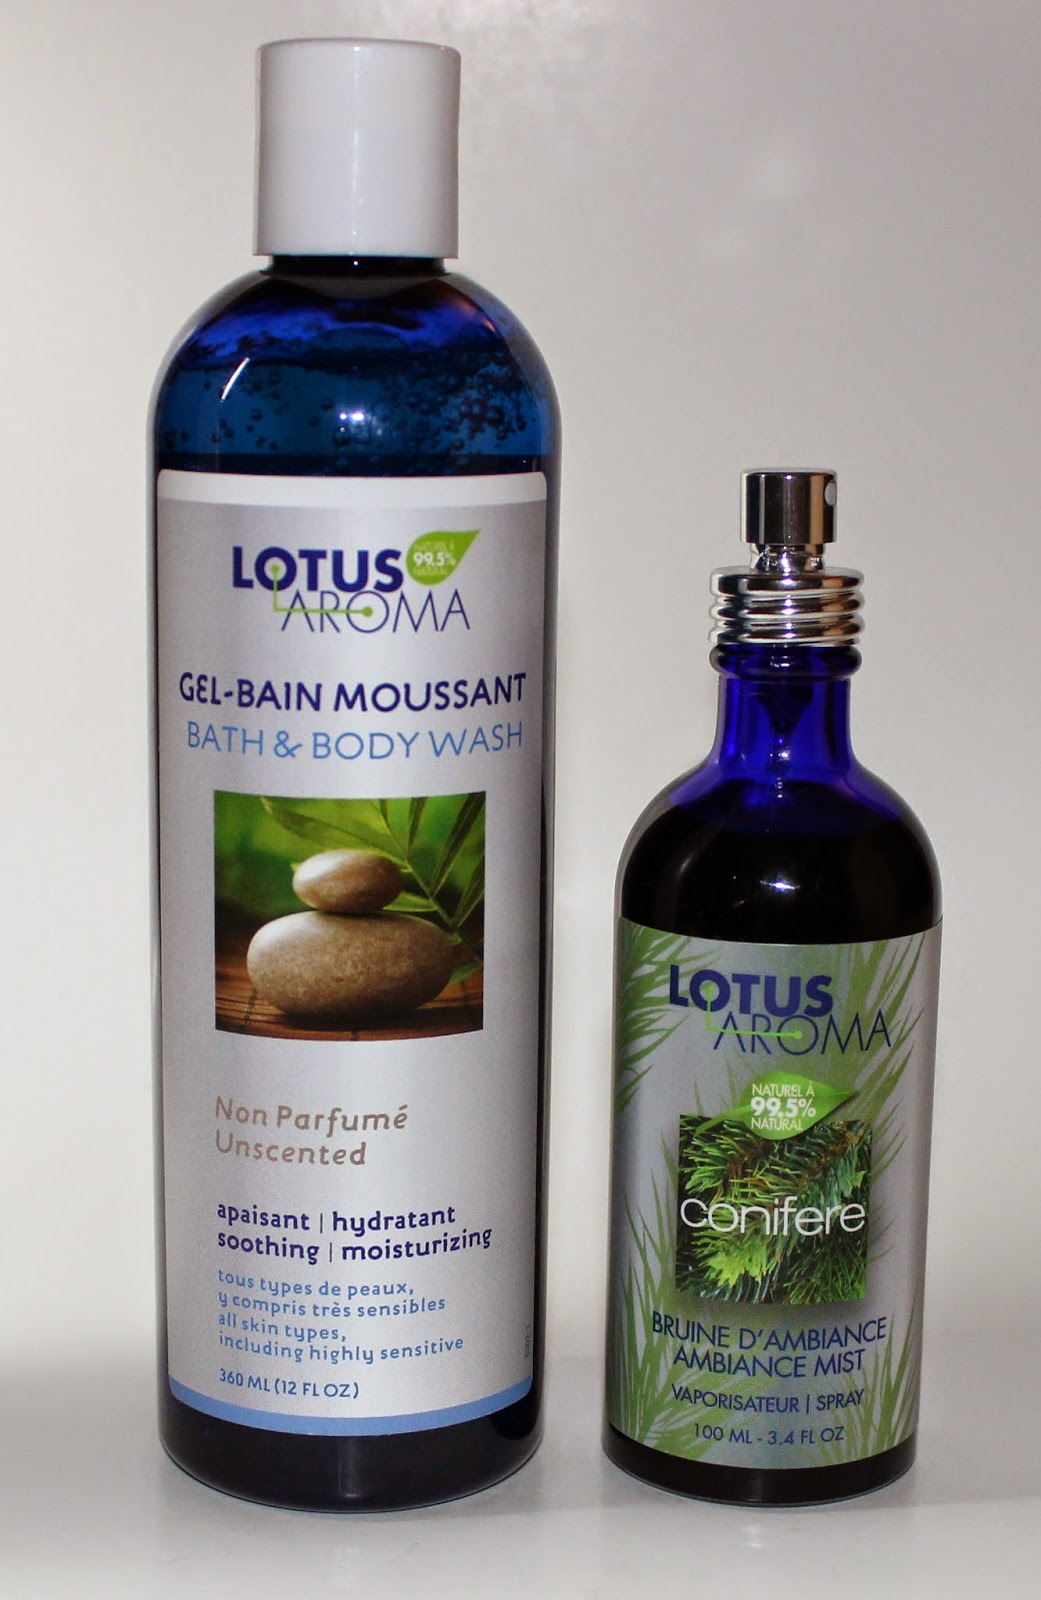 Lotus Aroma Conifere Ambiance Mist & Zen Bath and Bodywash